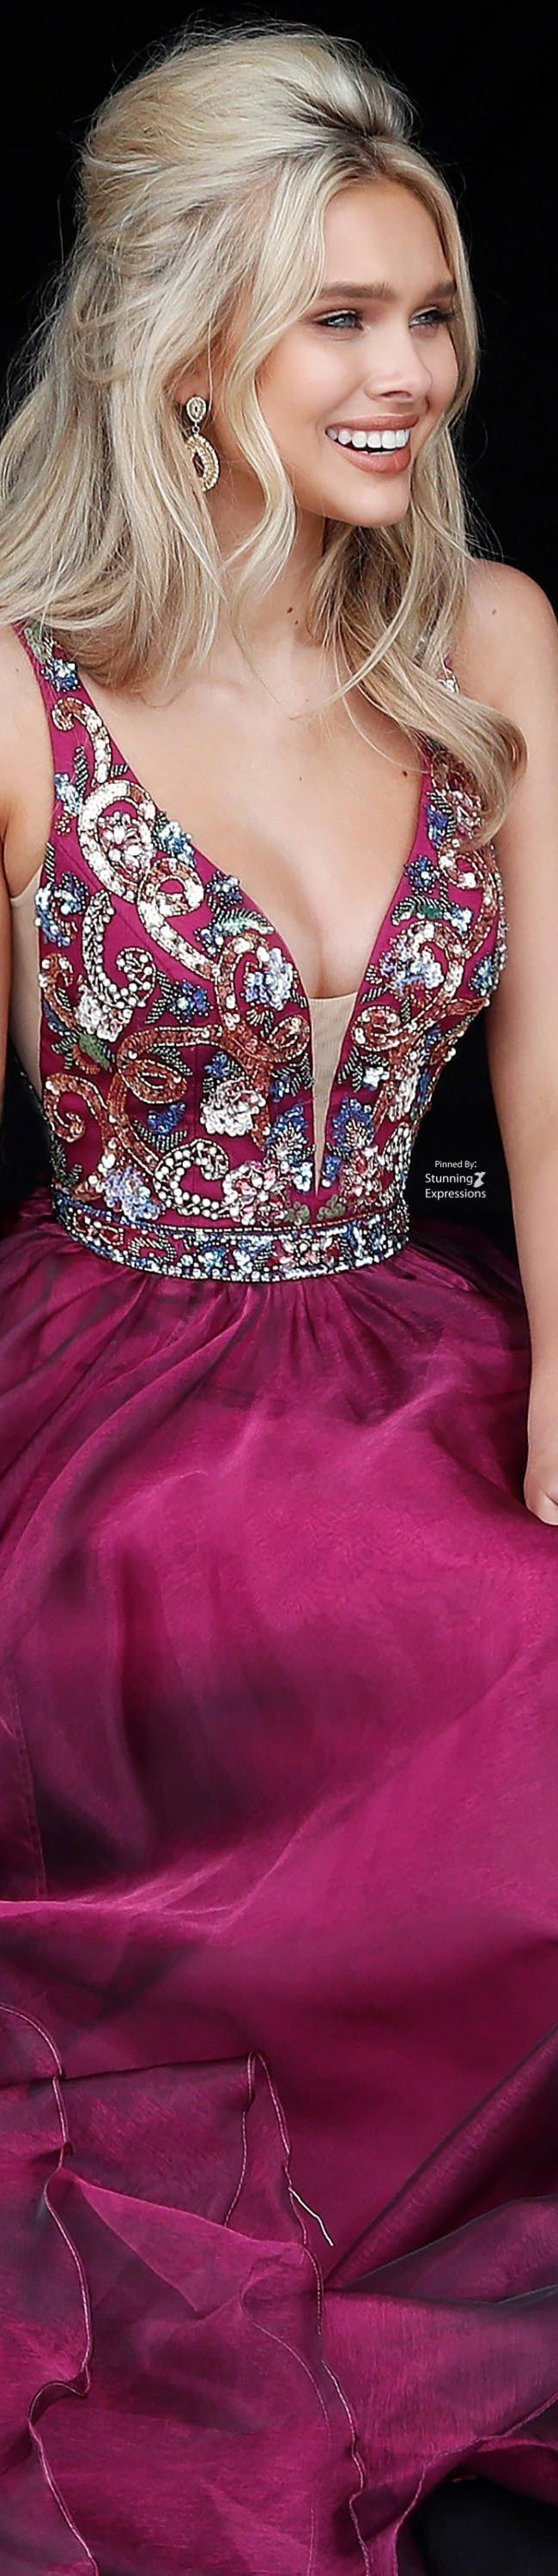 Pin by lucia on vestidos de noche pinterest prom gowns and